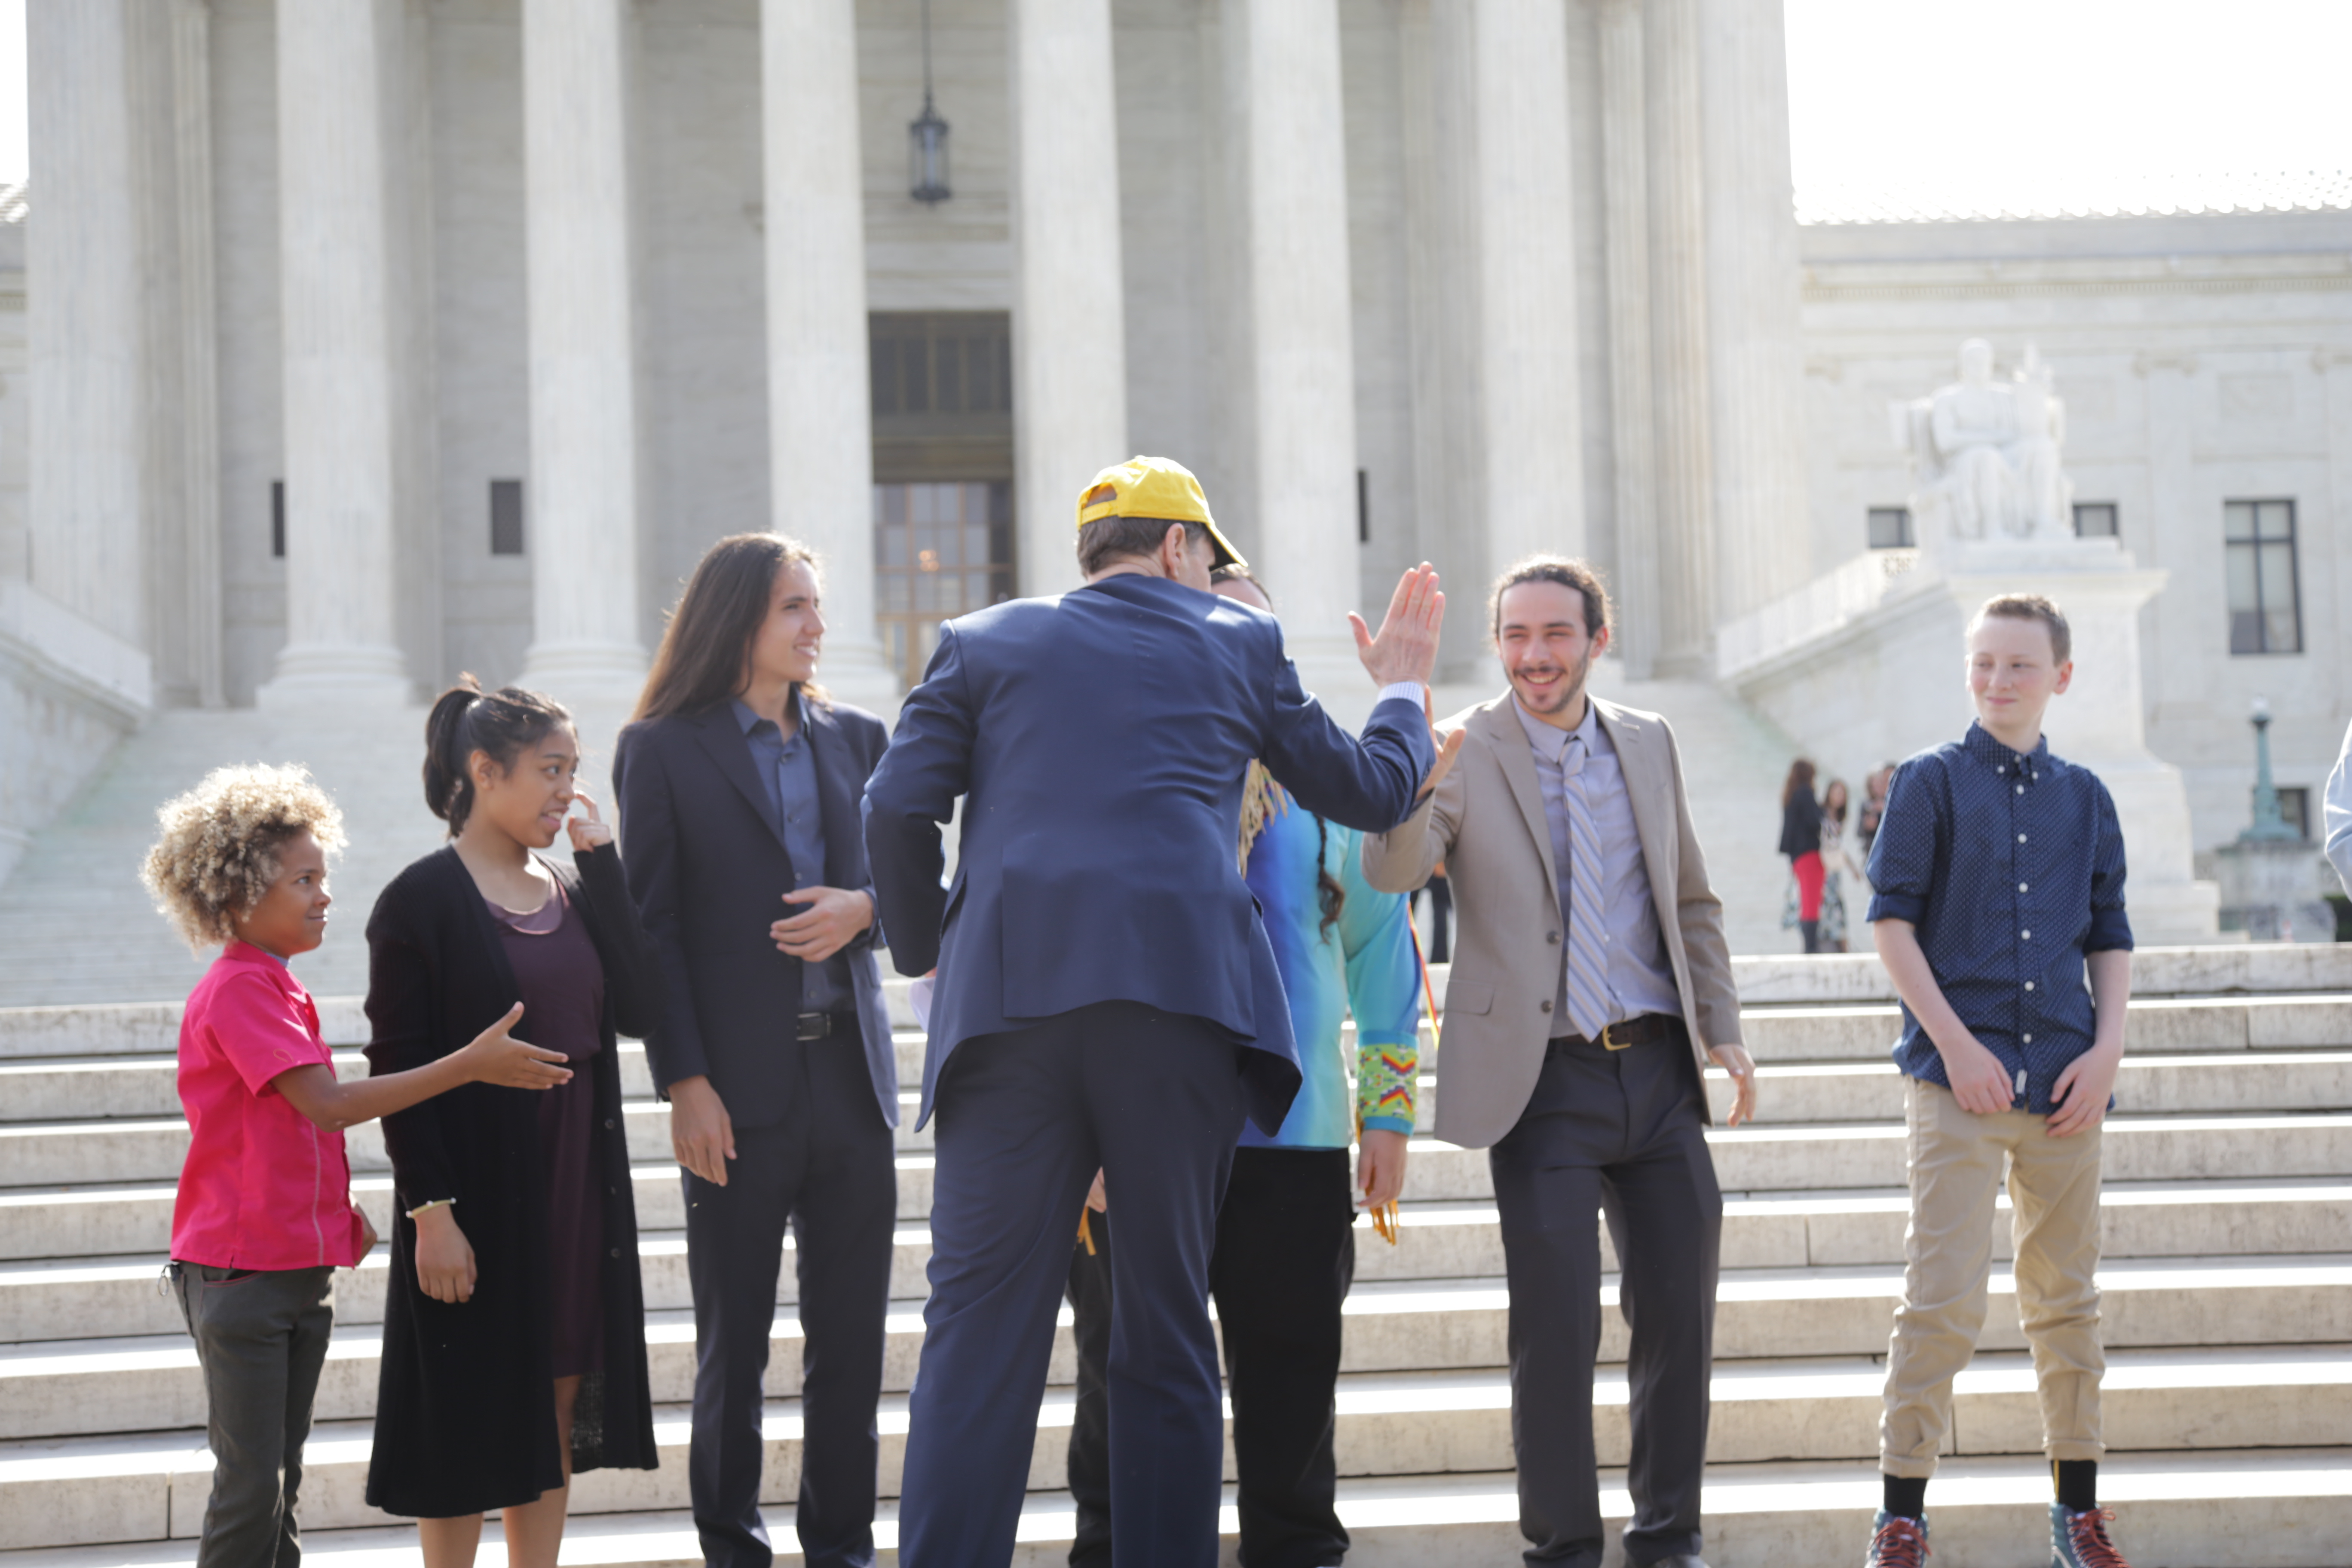 Sen. Ron Wyden (D-OR) high-fives Jacob Lebel, 20, one of the plaintiffs in the Our Childrens Trust suit. (Photo by John Light)